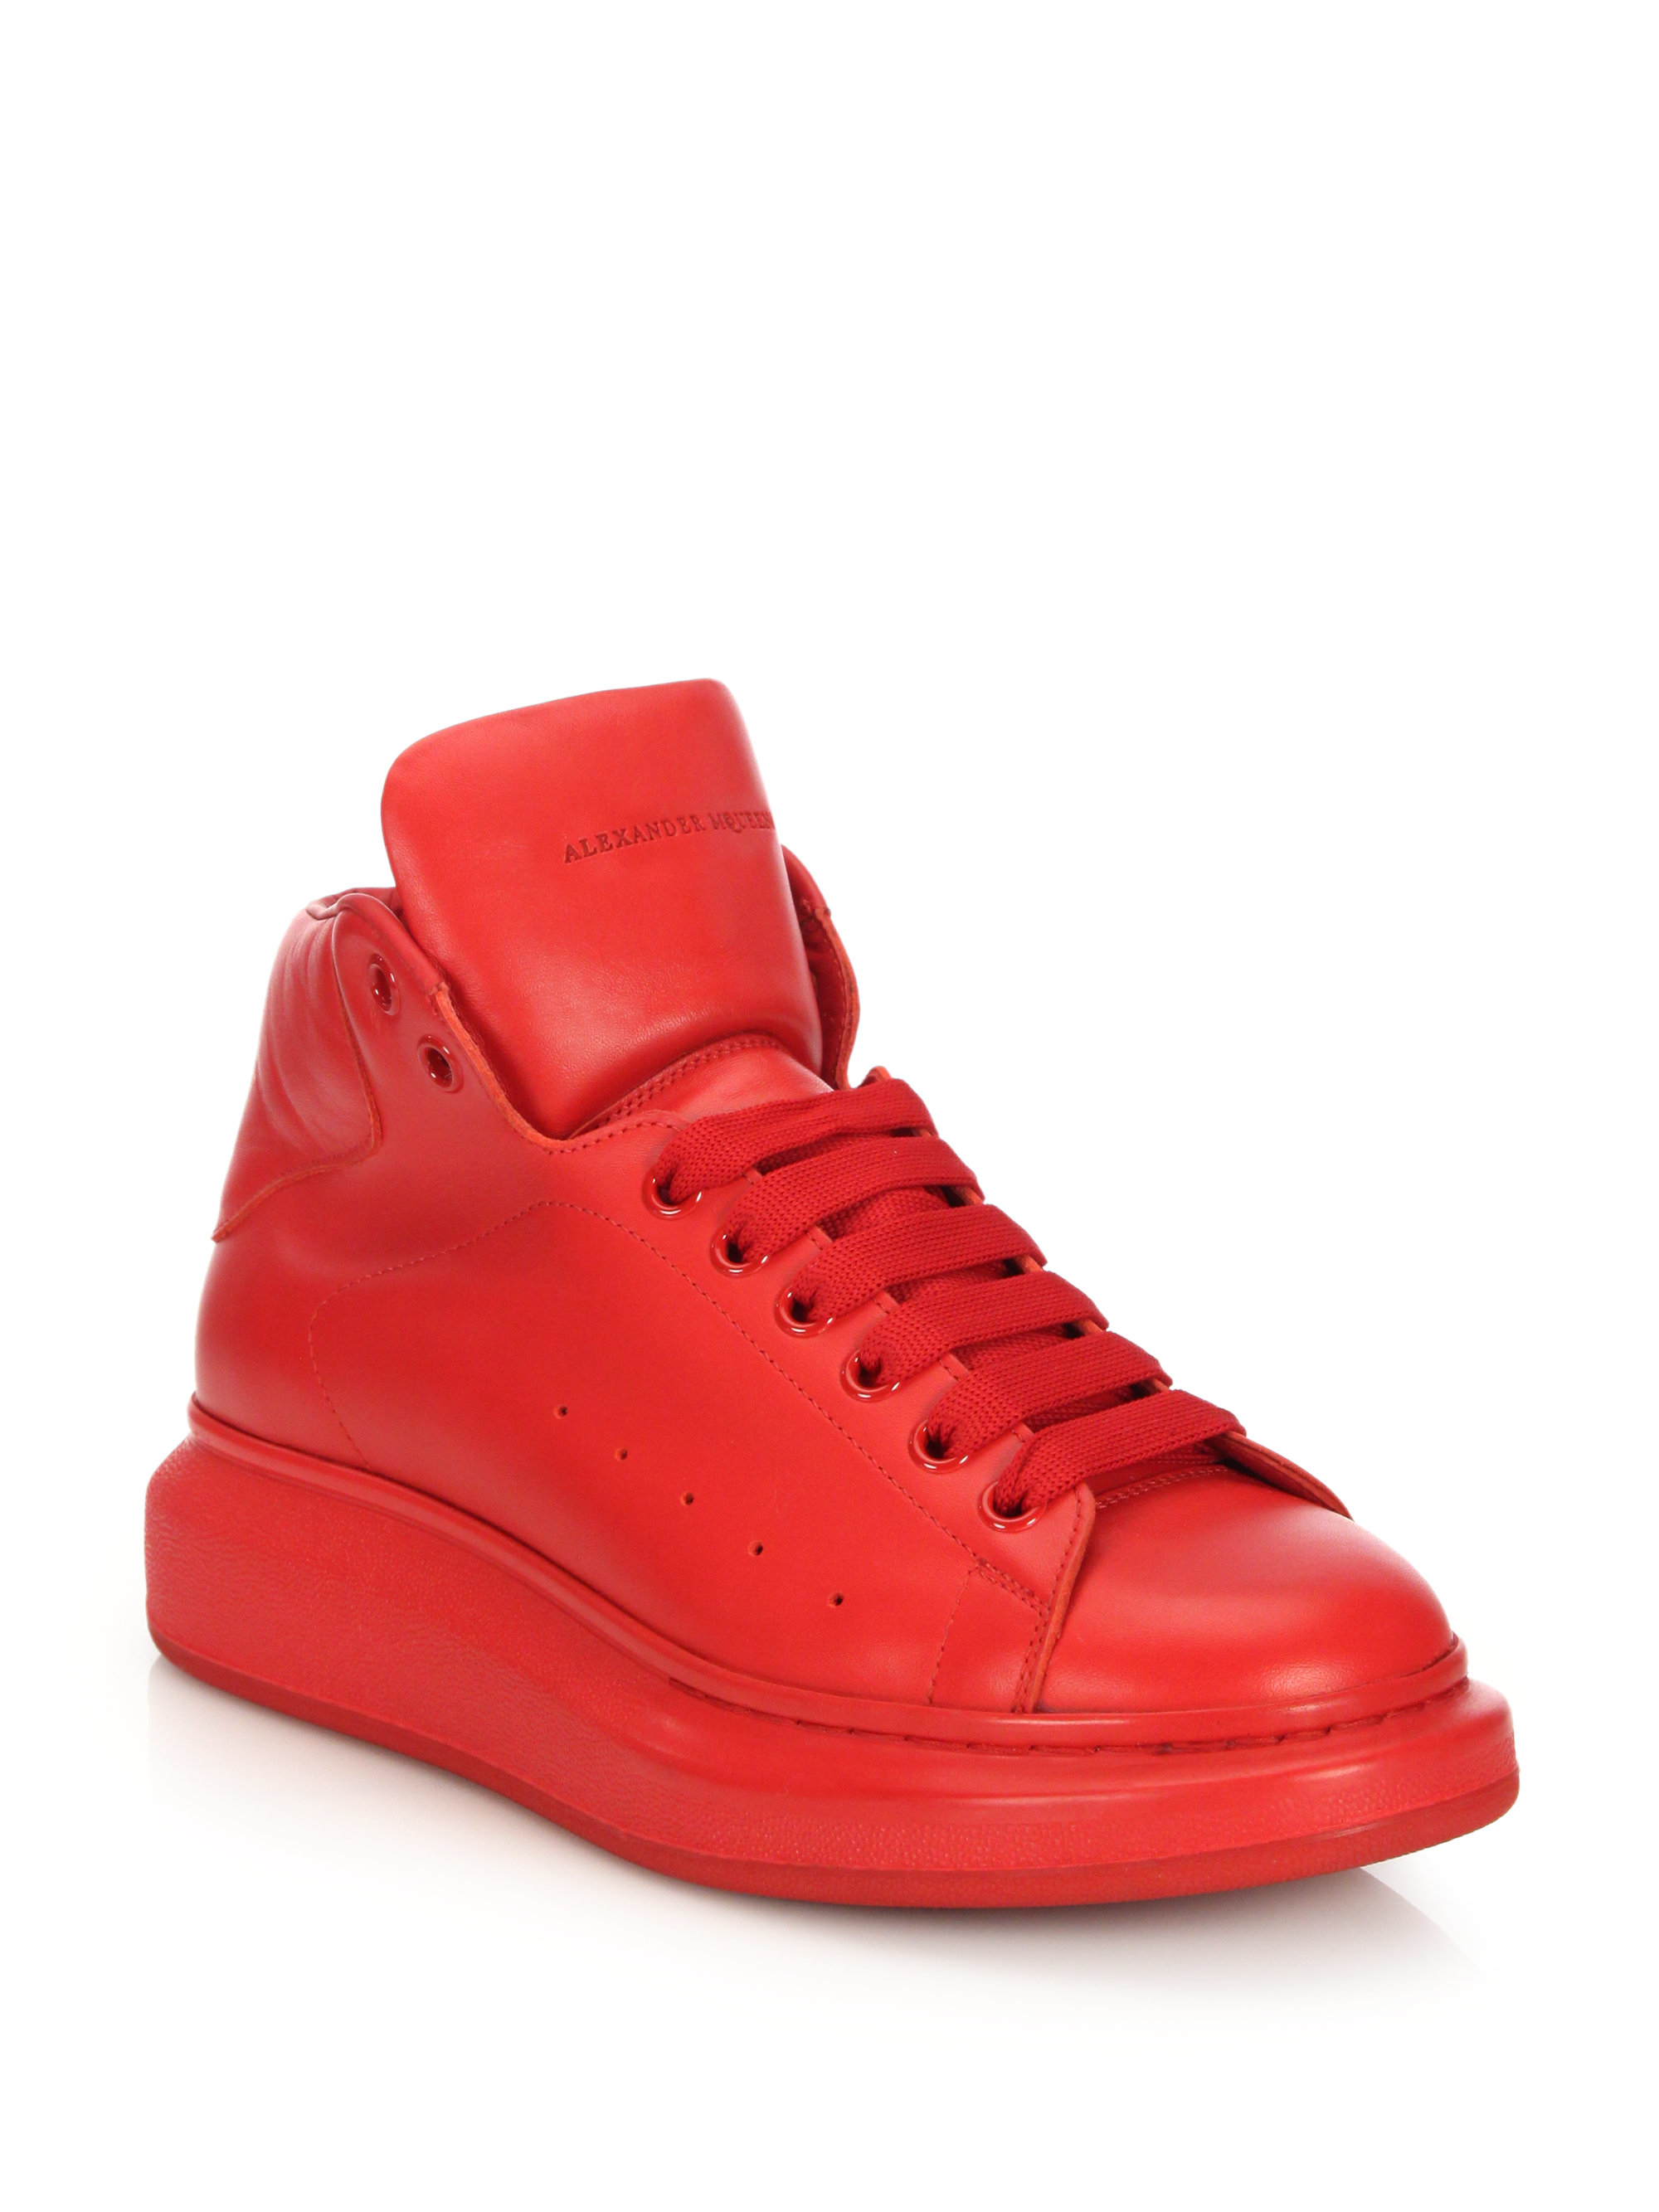 Alexander Mcqueen Leather High-Top Sneakers In Red - Lyst-7846